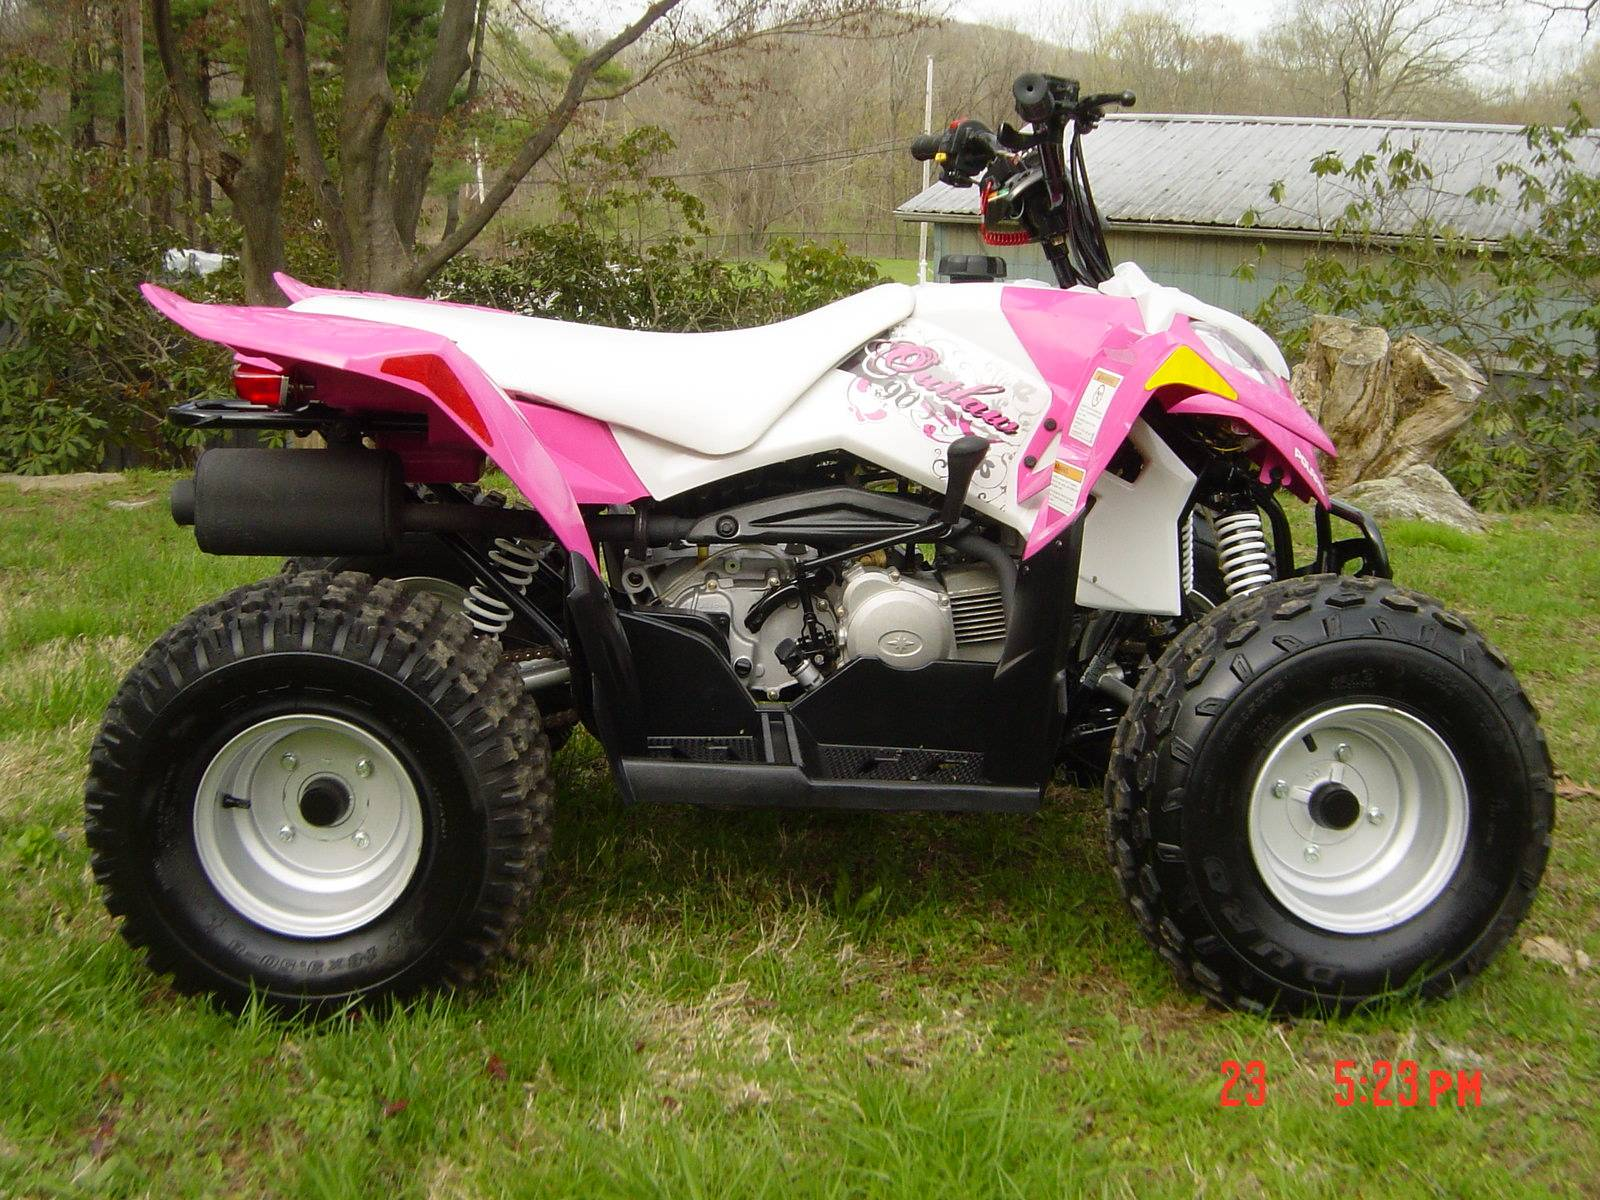 2014 Polaris Outlaw® 90 in Brewster, New York - Photo 9